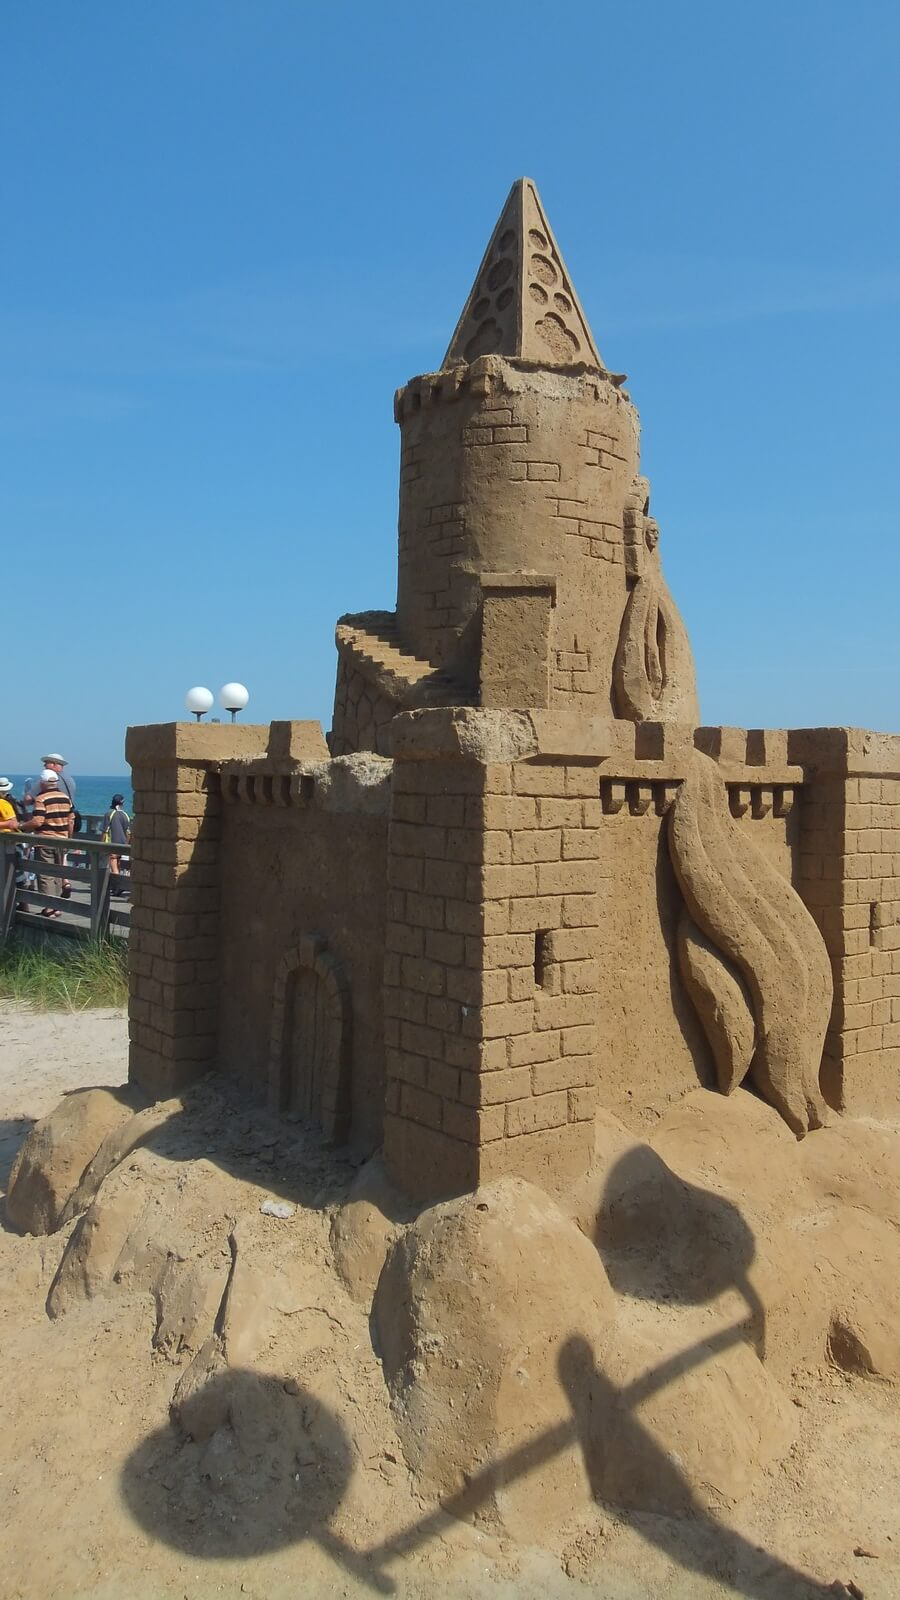 Sand sculpture castle on the Lake bridge